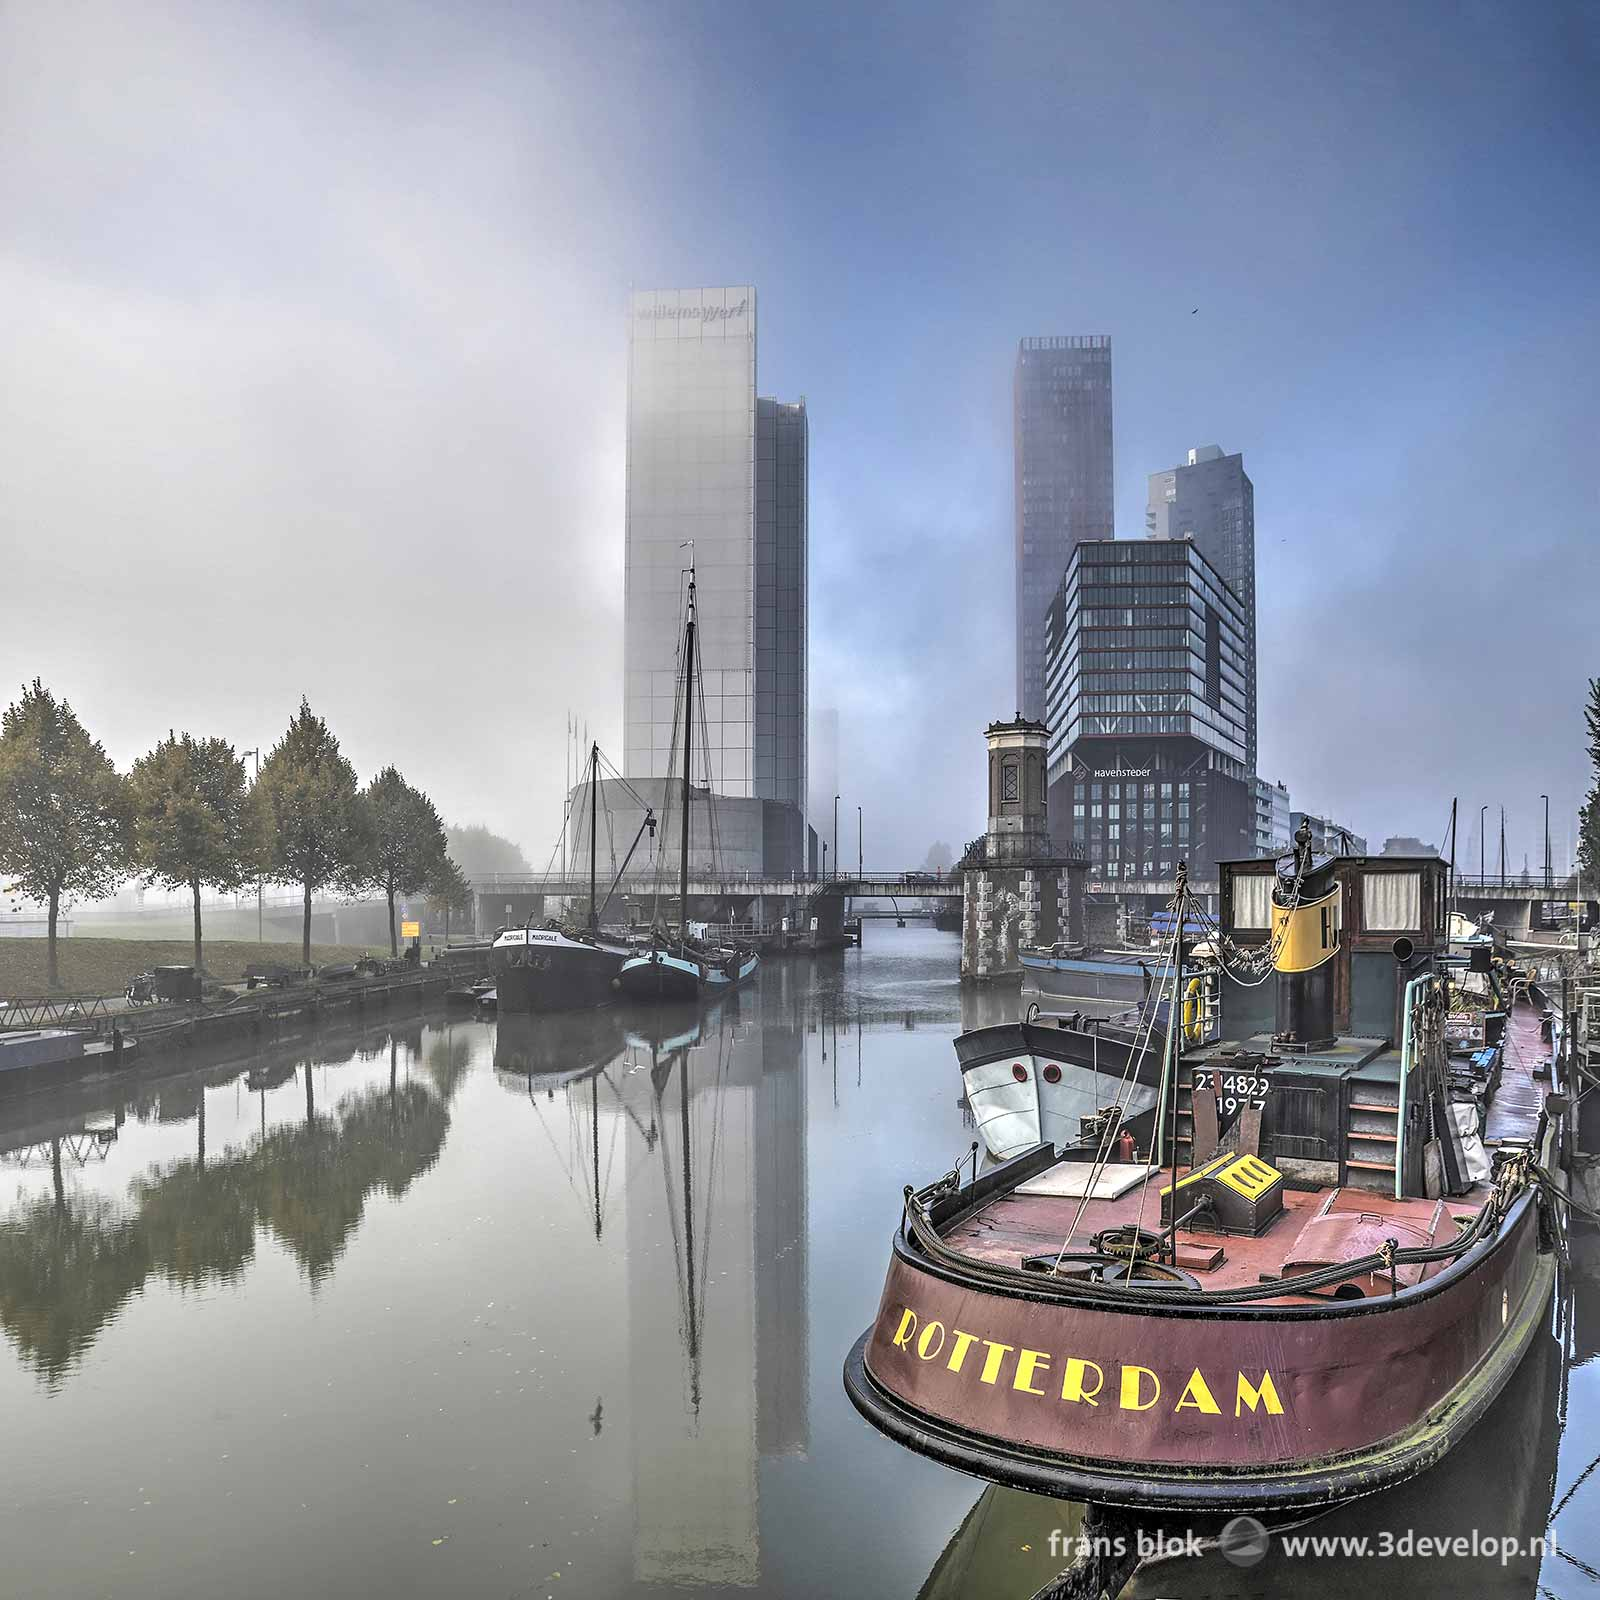 Wijnhaven in Rotterdam, an old harbour with boats and highrise buildings, with patches of mist rolling into the city from the river Nieuwe Maas